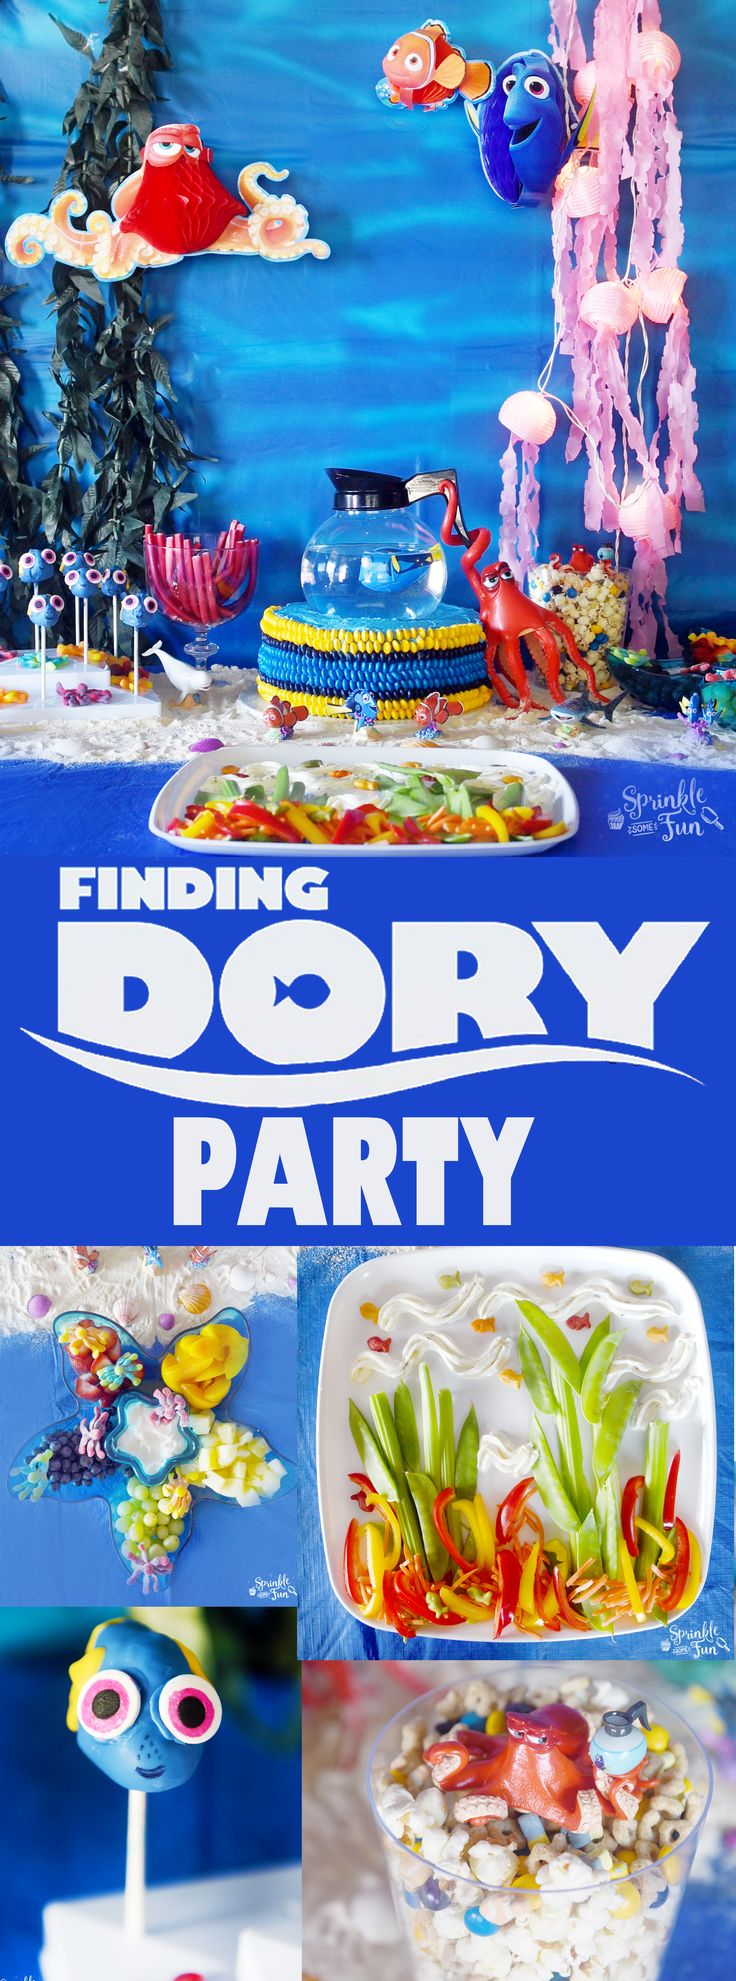 This Finding Dory party is complete with Finding Dory fun with every detail including Finding Dory games, food and party supplies!